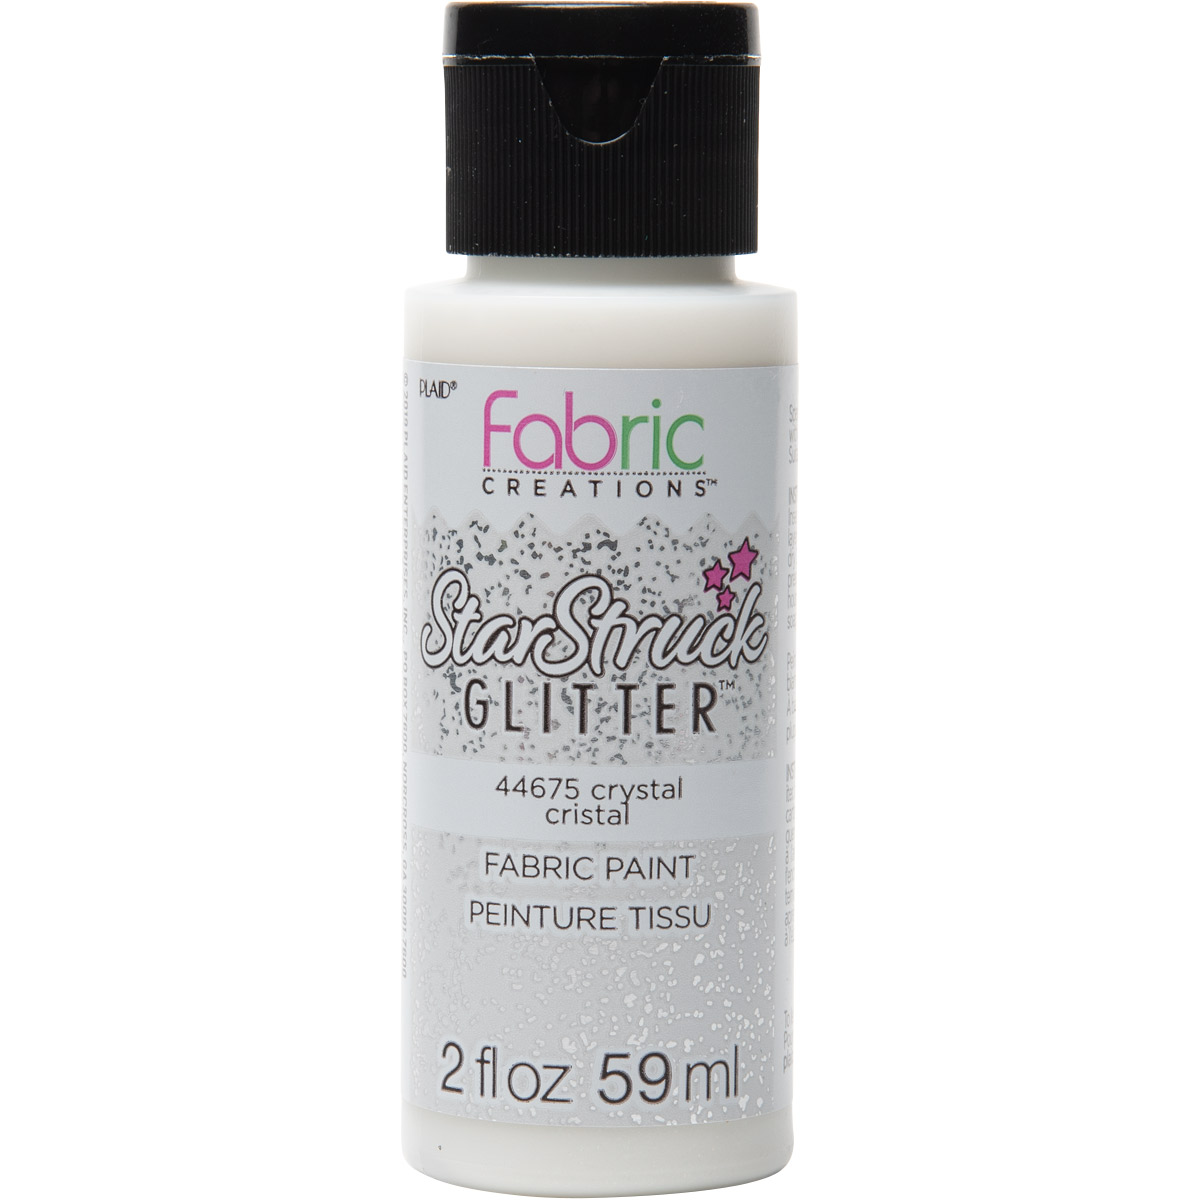 Fabric Creations™ StarStruck Glitter™ Fabric Paint - Crystal, 2 oz. - 44675